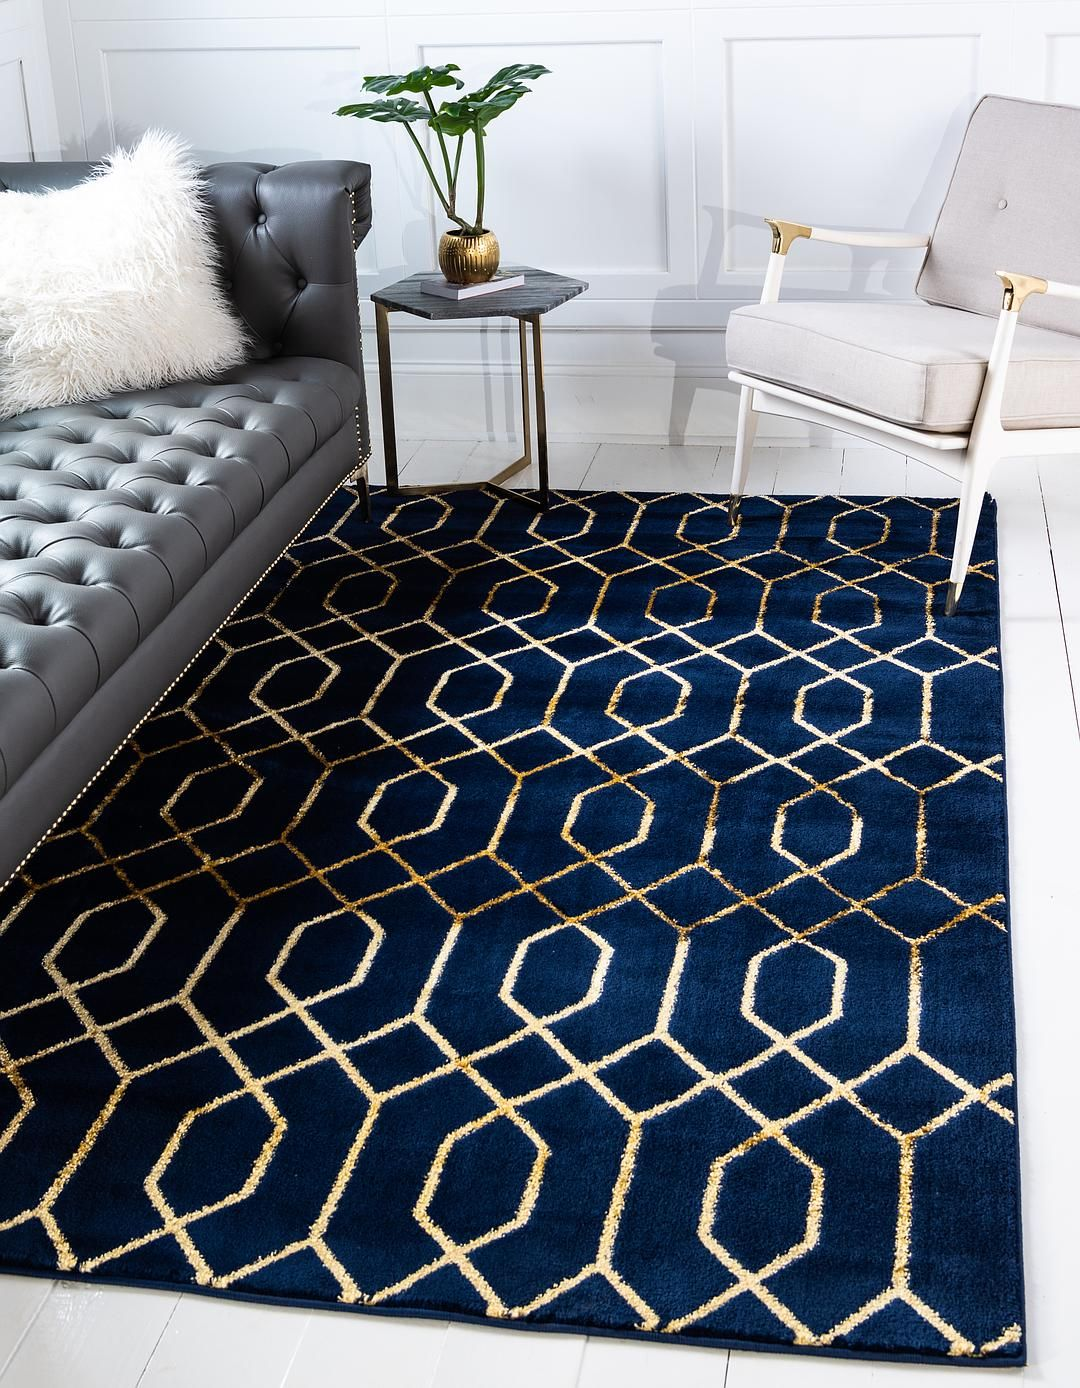 Navy Blue Gold 5 X 8 Marilyn Monroe Glam Trellis Rug Area